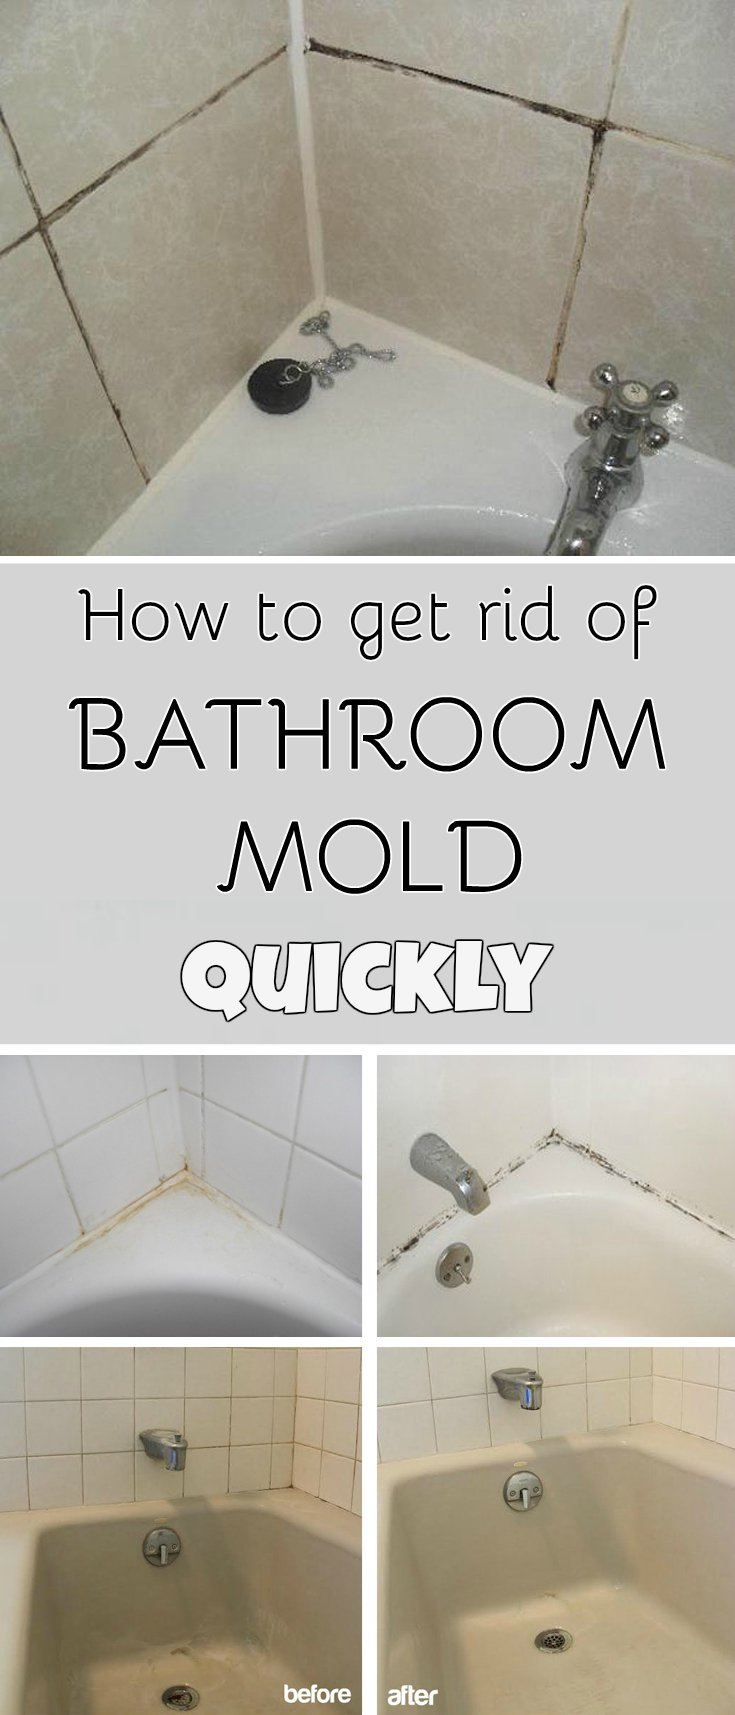 How To Get Rid Of Bathroom Mold Quickly MyCleaningSolutionscom - How to clean up mold in bathroom